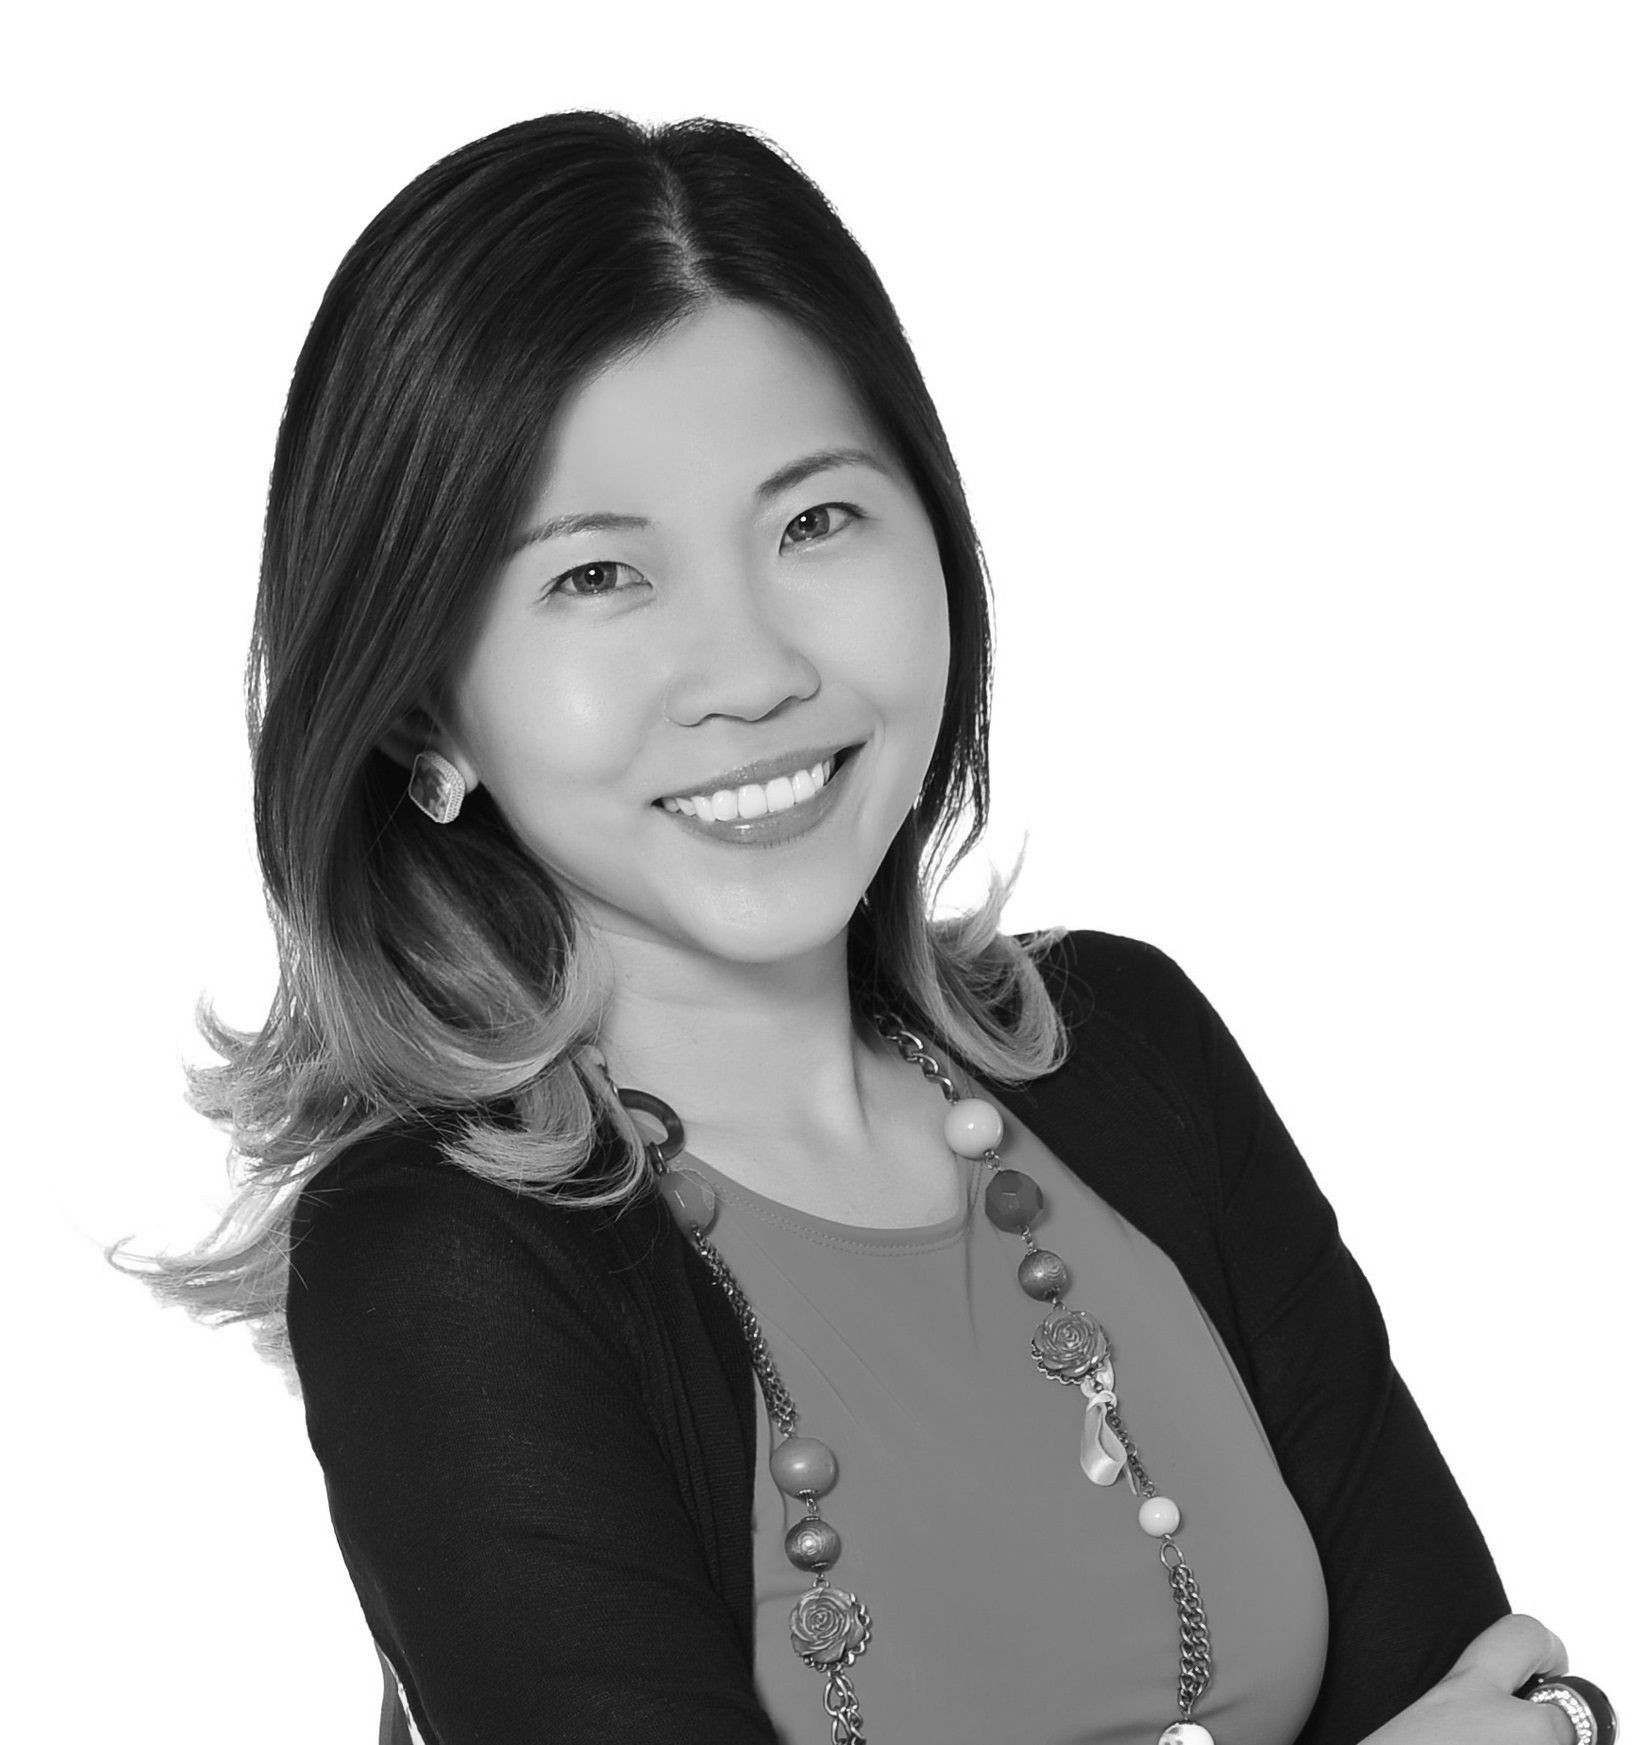 Welcoming Wendy Loh to our Singapore office as Director of Corporate Practice.